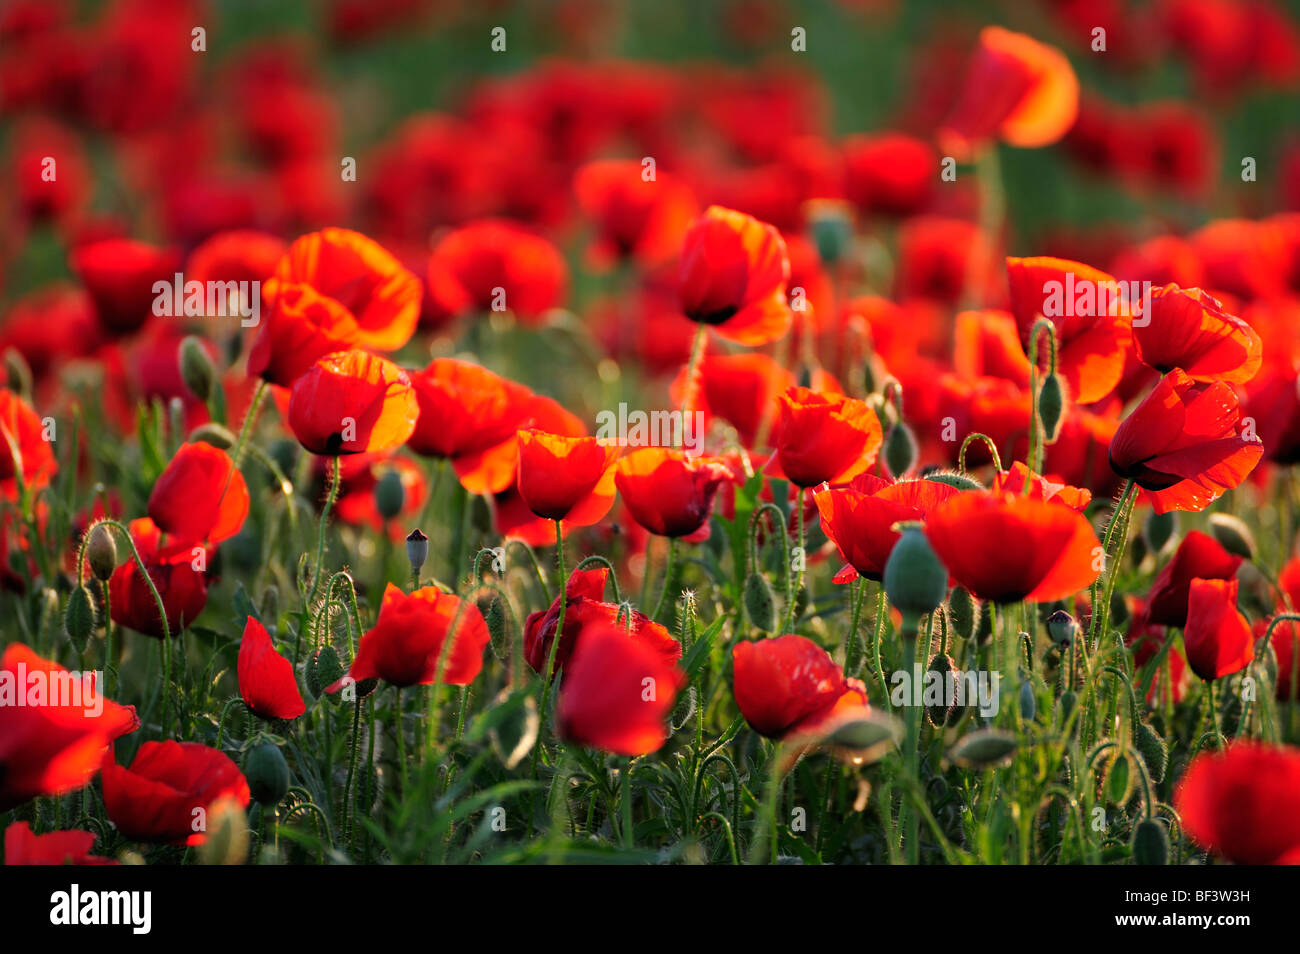 Poppy wild flowers red poppies red green nature environment poppy fields - Stock Image